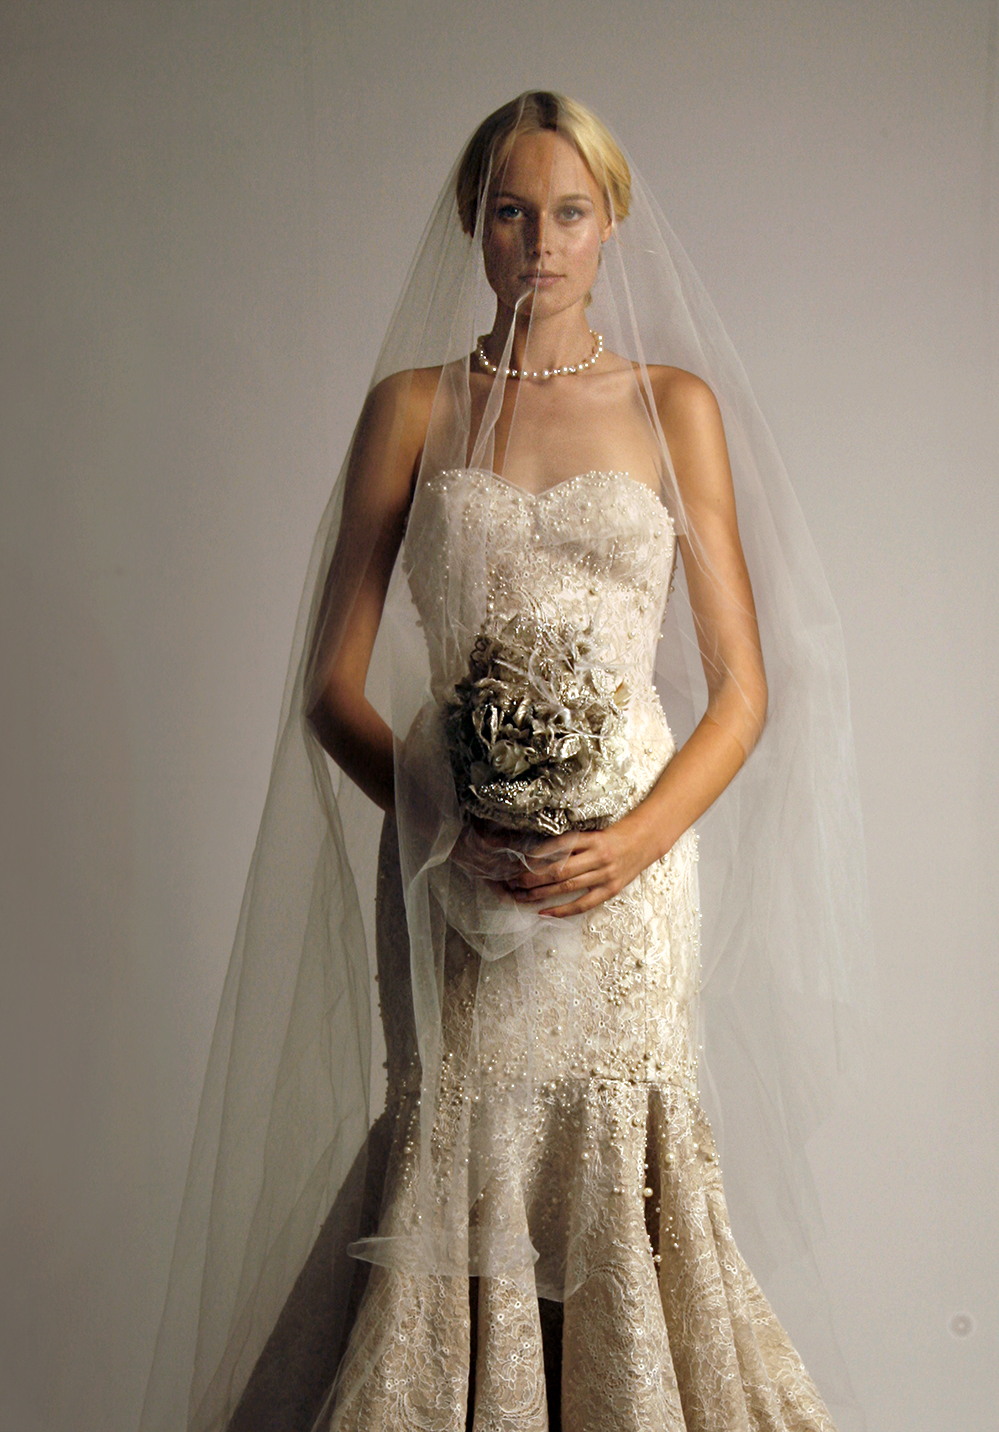 Barbara kavchok wedding dresses usa for Wedding dresses in the usa